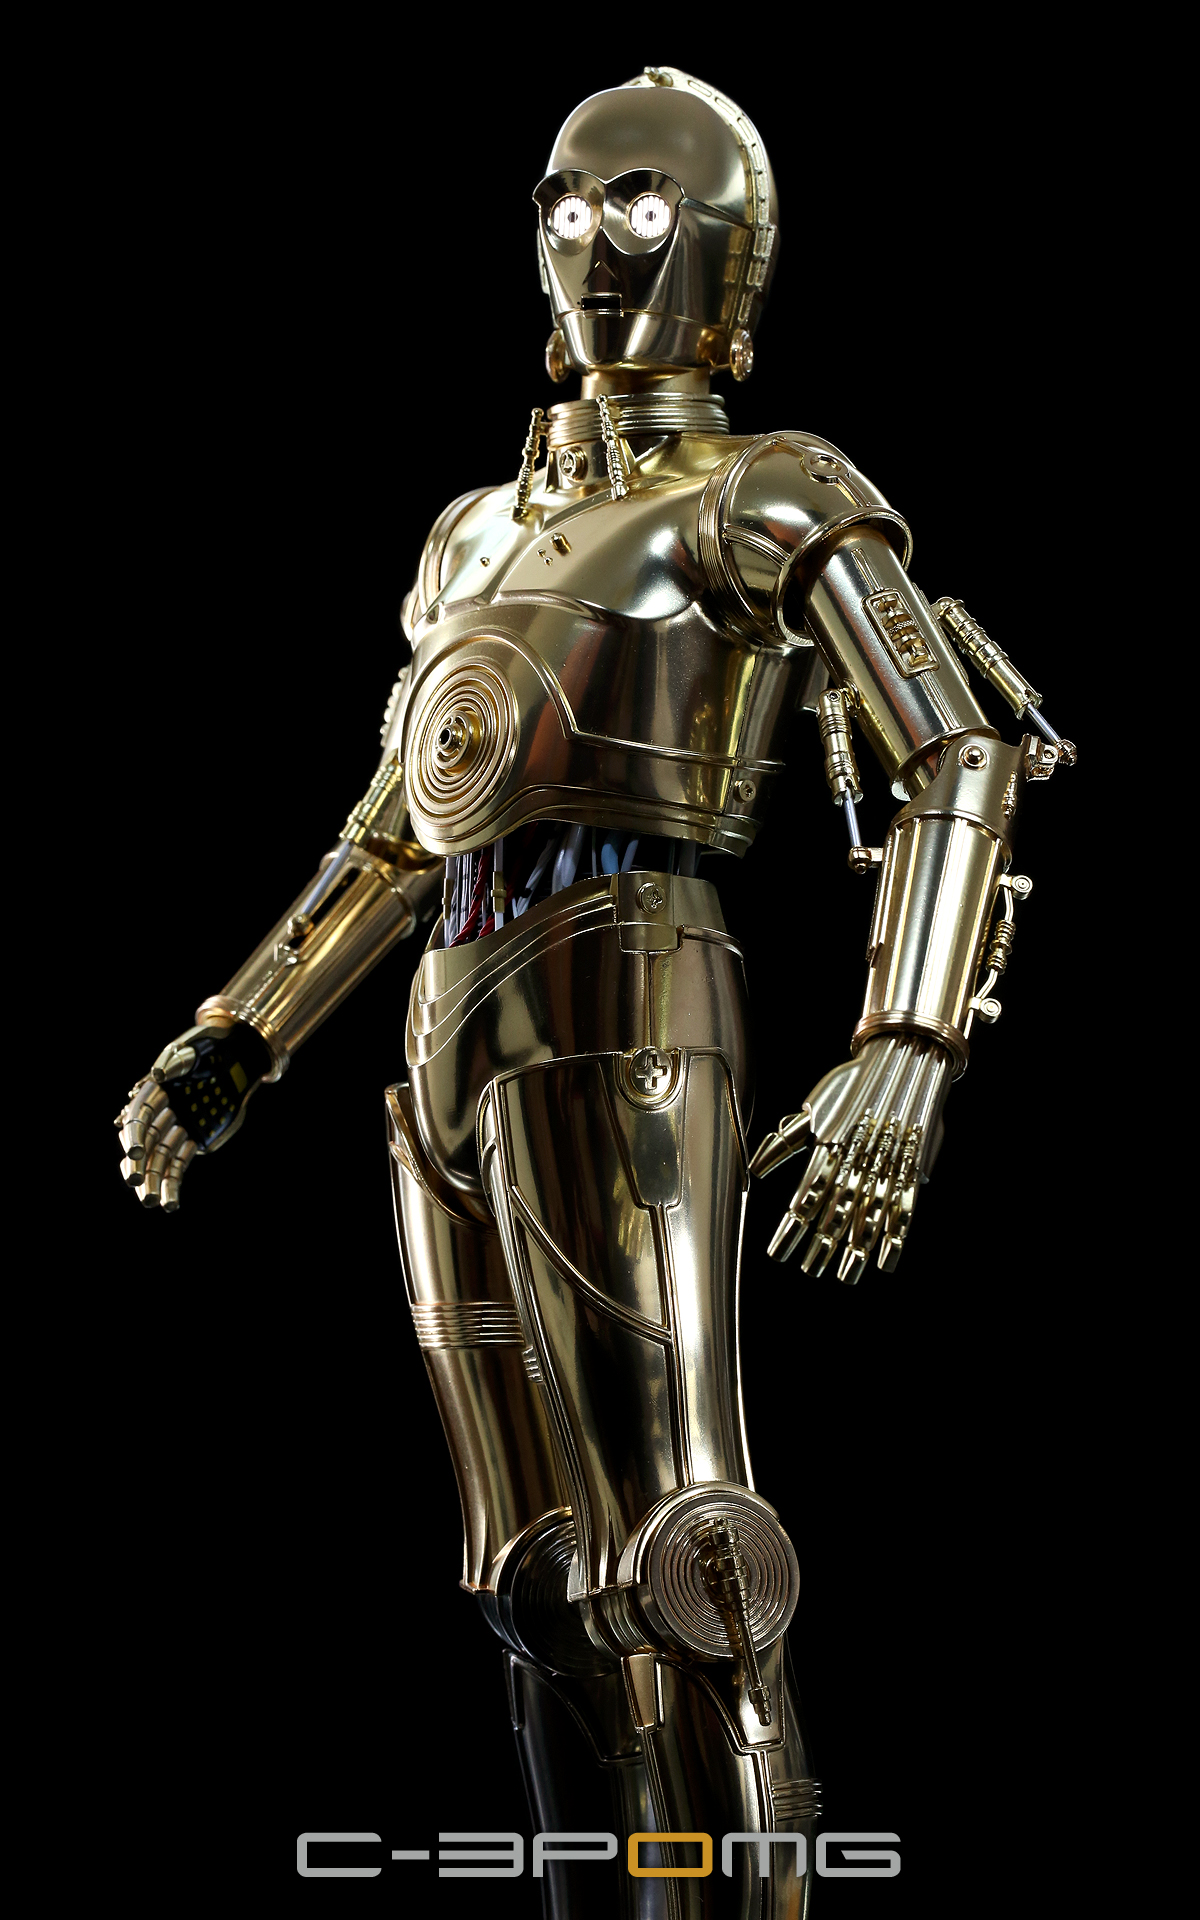 [Bandai] Star Wars: C-3PO - Perfect Model 1/6 scale - LANÇADO!!! - Página 2 C-3PO1030_zps24df8926